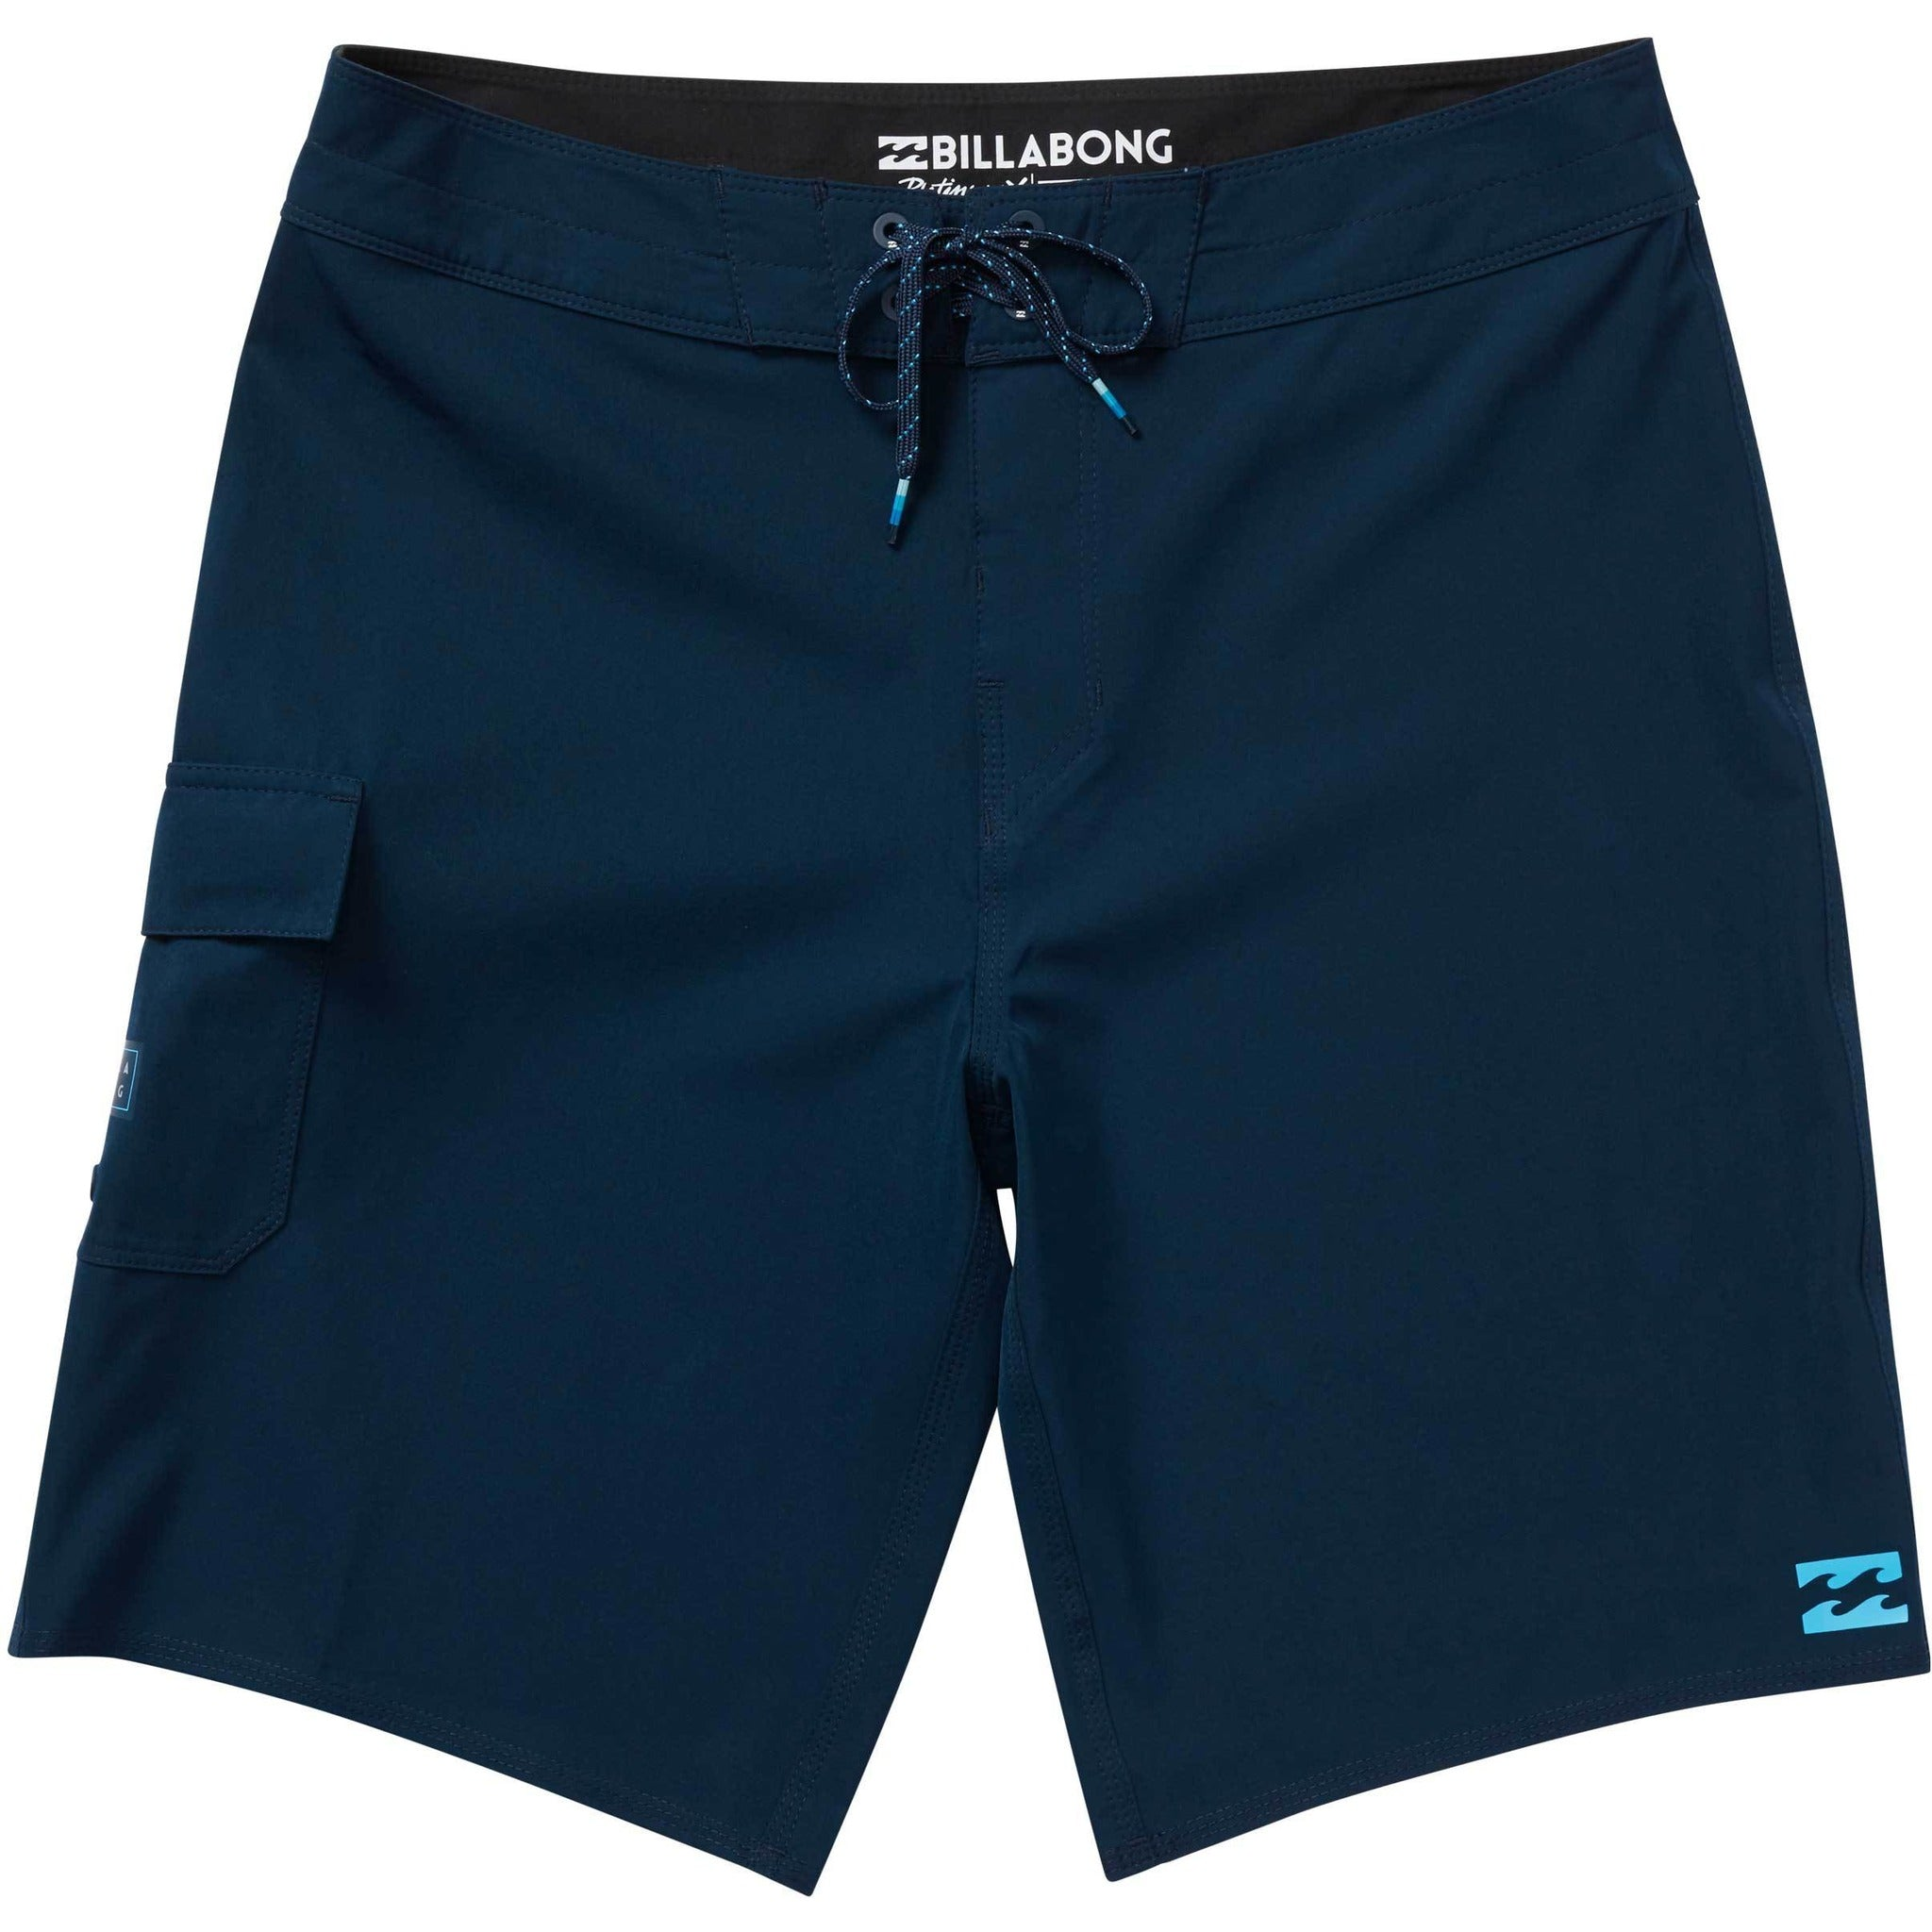 Billabong All Day X Boy's Boardshorts - 88 Gear